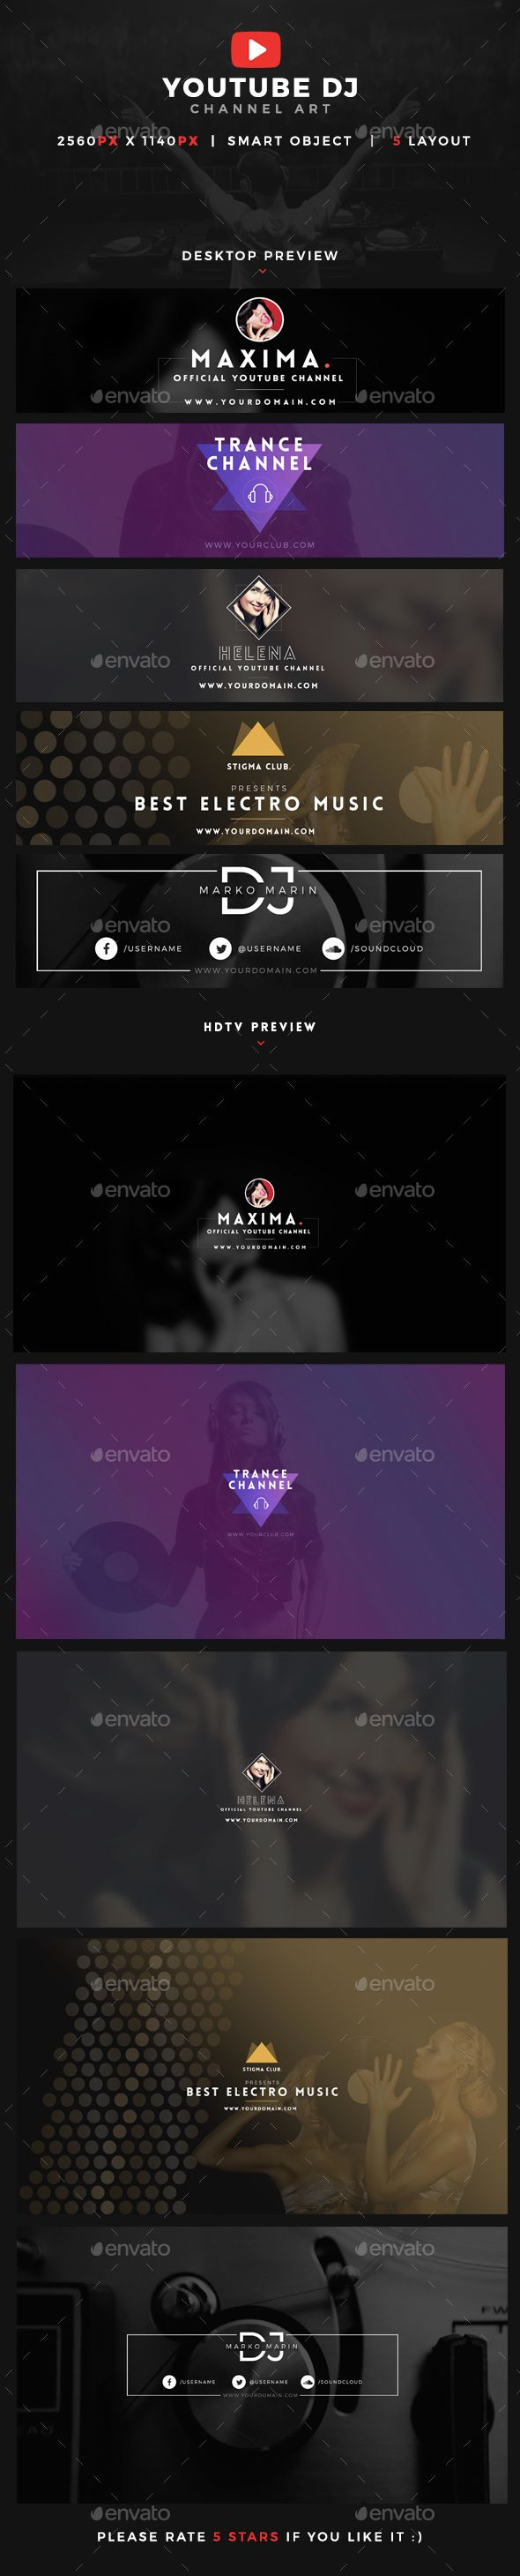 Electronic music event facebook post banner templates bundle 2 youtube dj cover channel art template psd download here httpgraphicriver facebook bannerfacebook pronofoot35fo Image collections